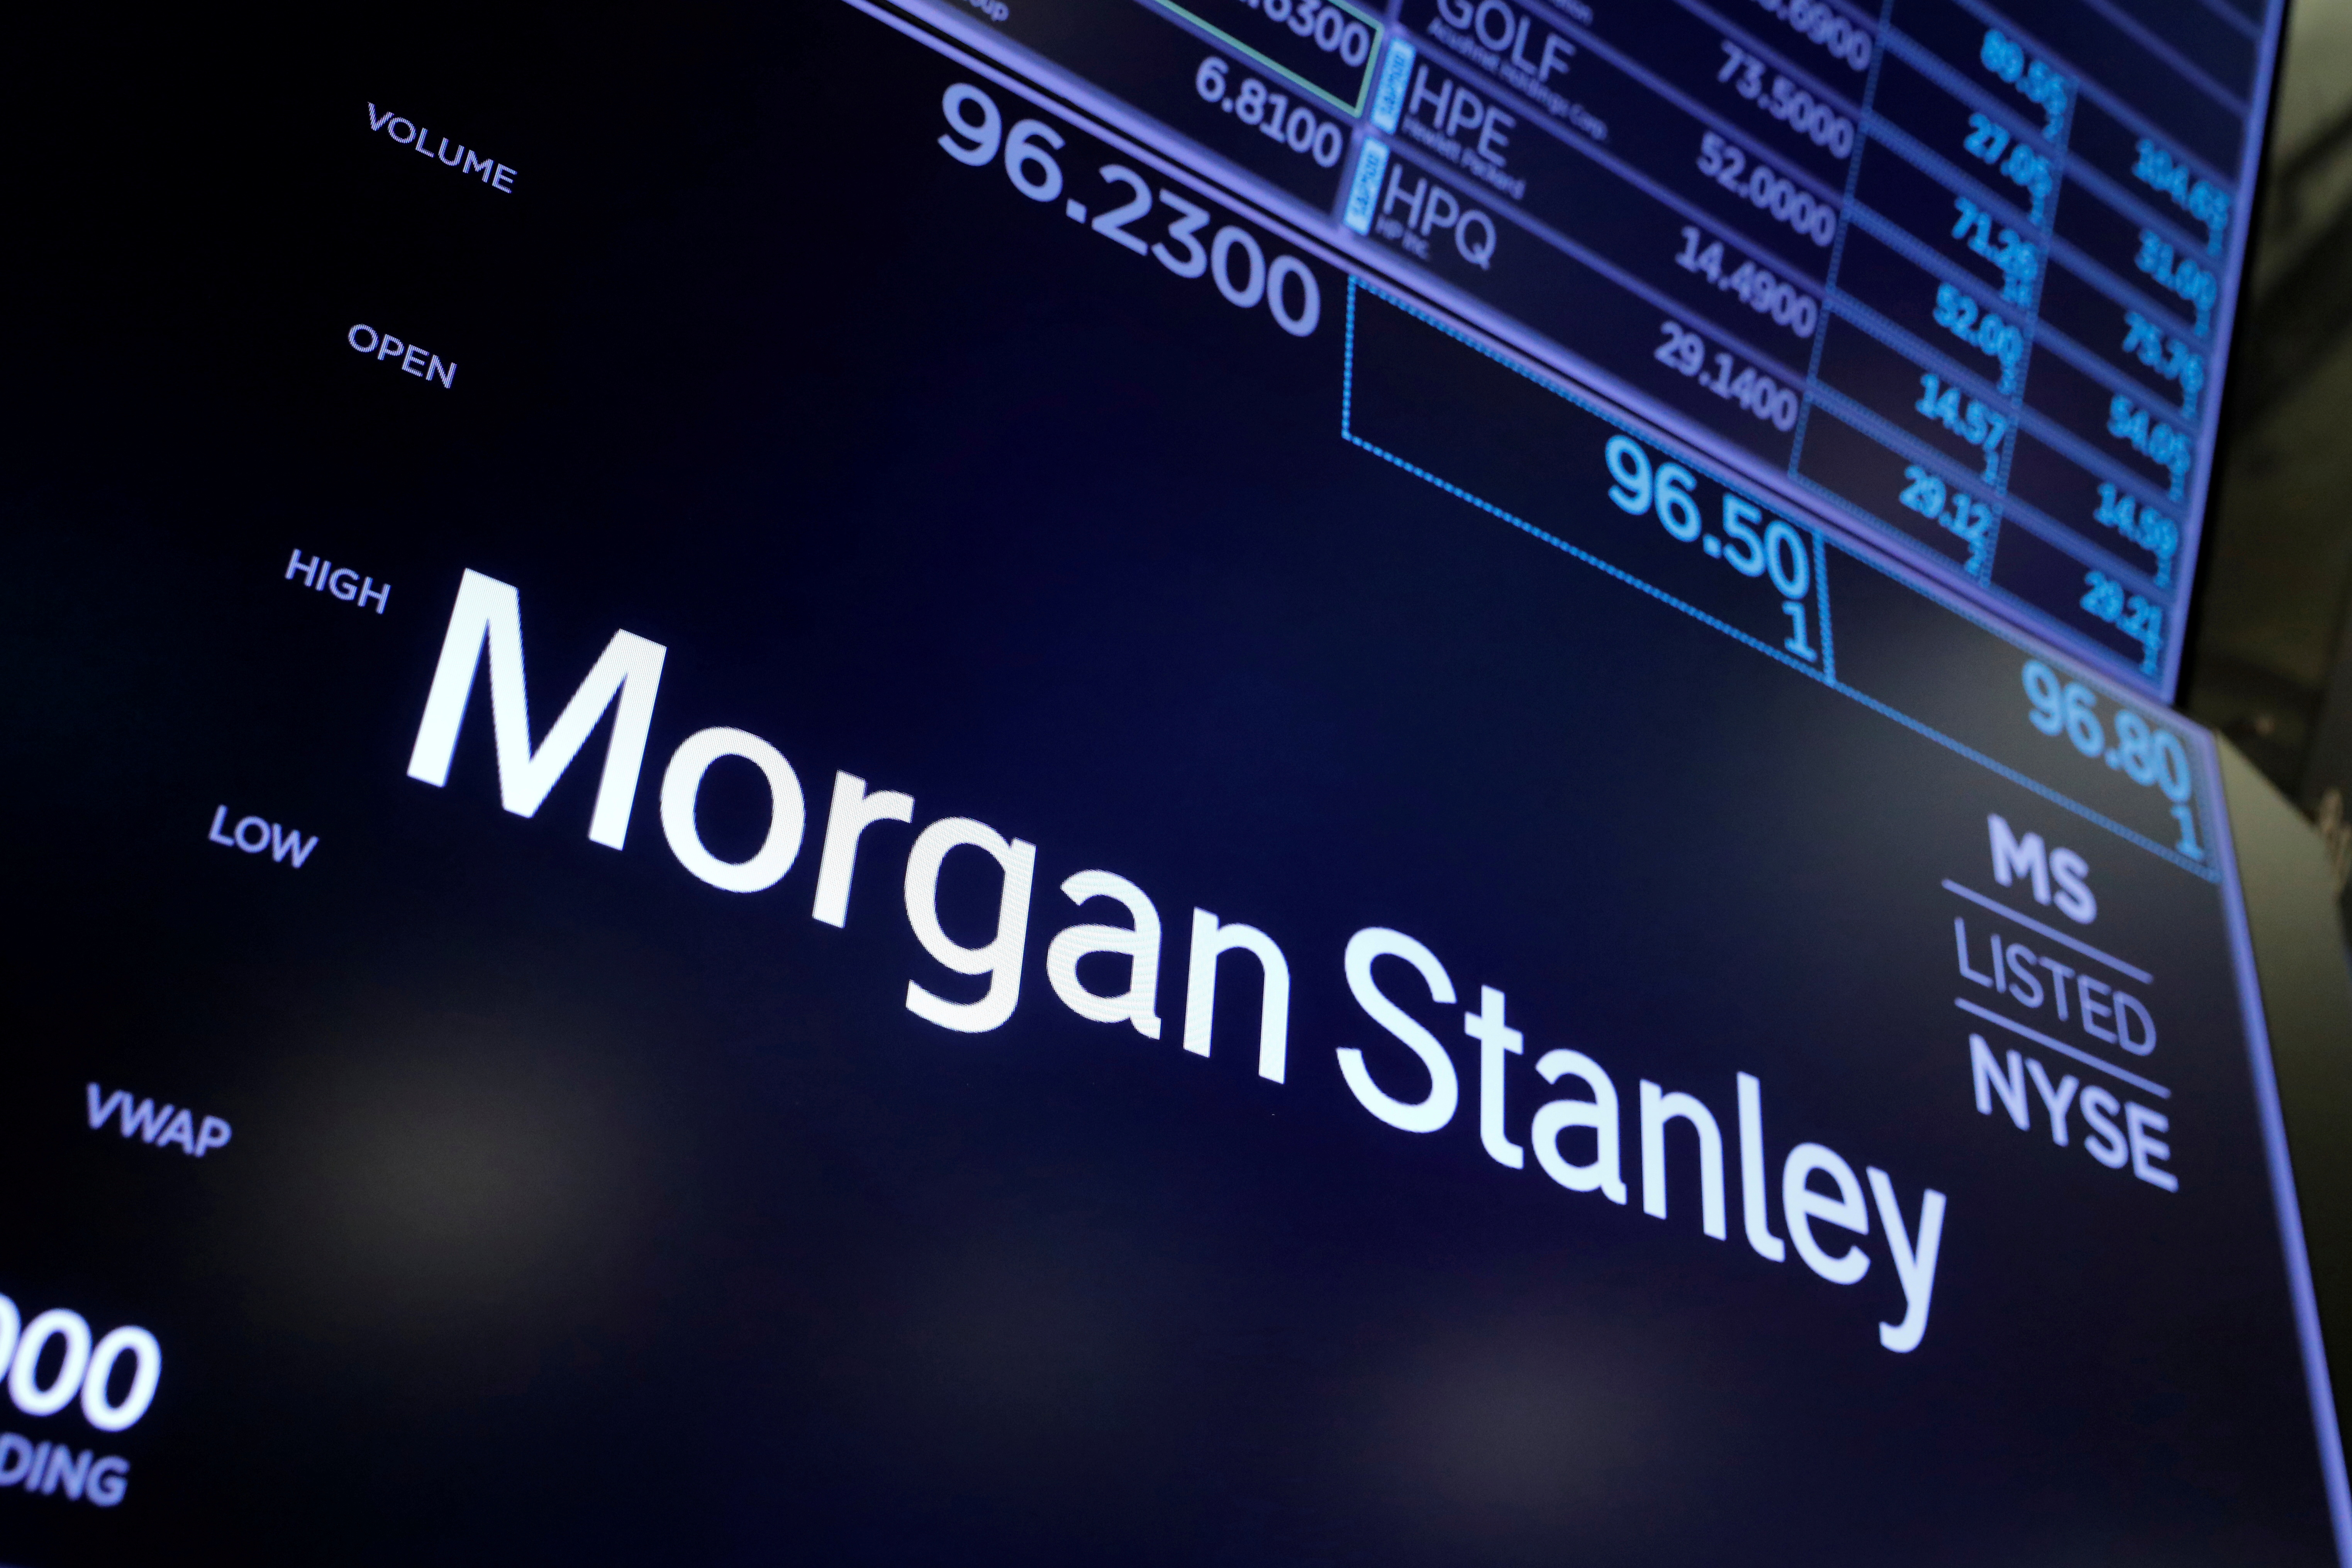 The logo for Morgan Stanley is seen on the trading floor at the New York Stock Exchange (NYSE) in Manhattan, New York City, U.S., August 3, 2021. REUTERS/Andrew Kelly